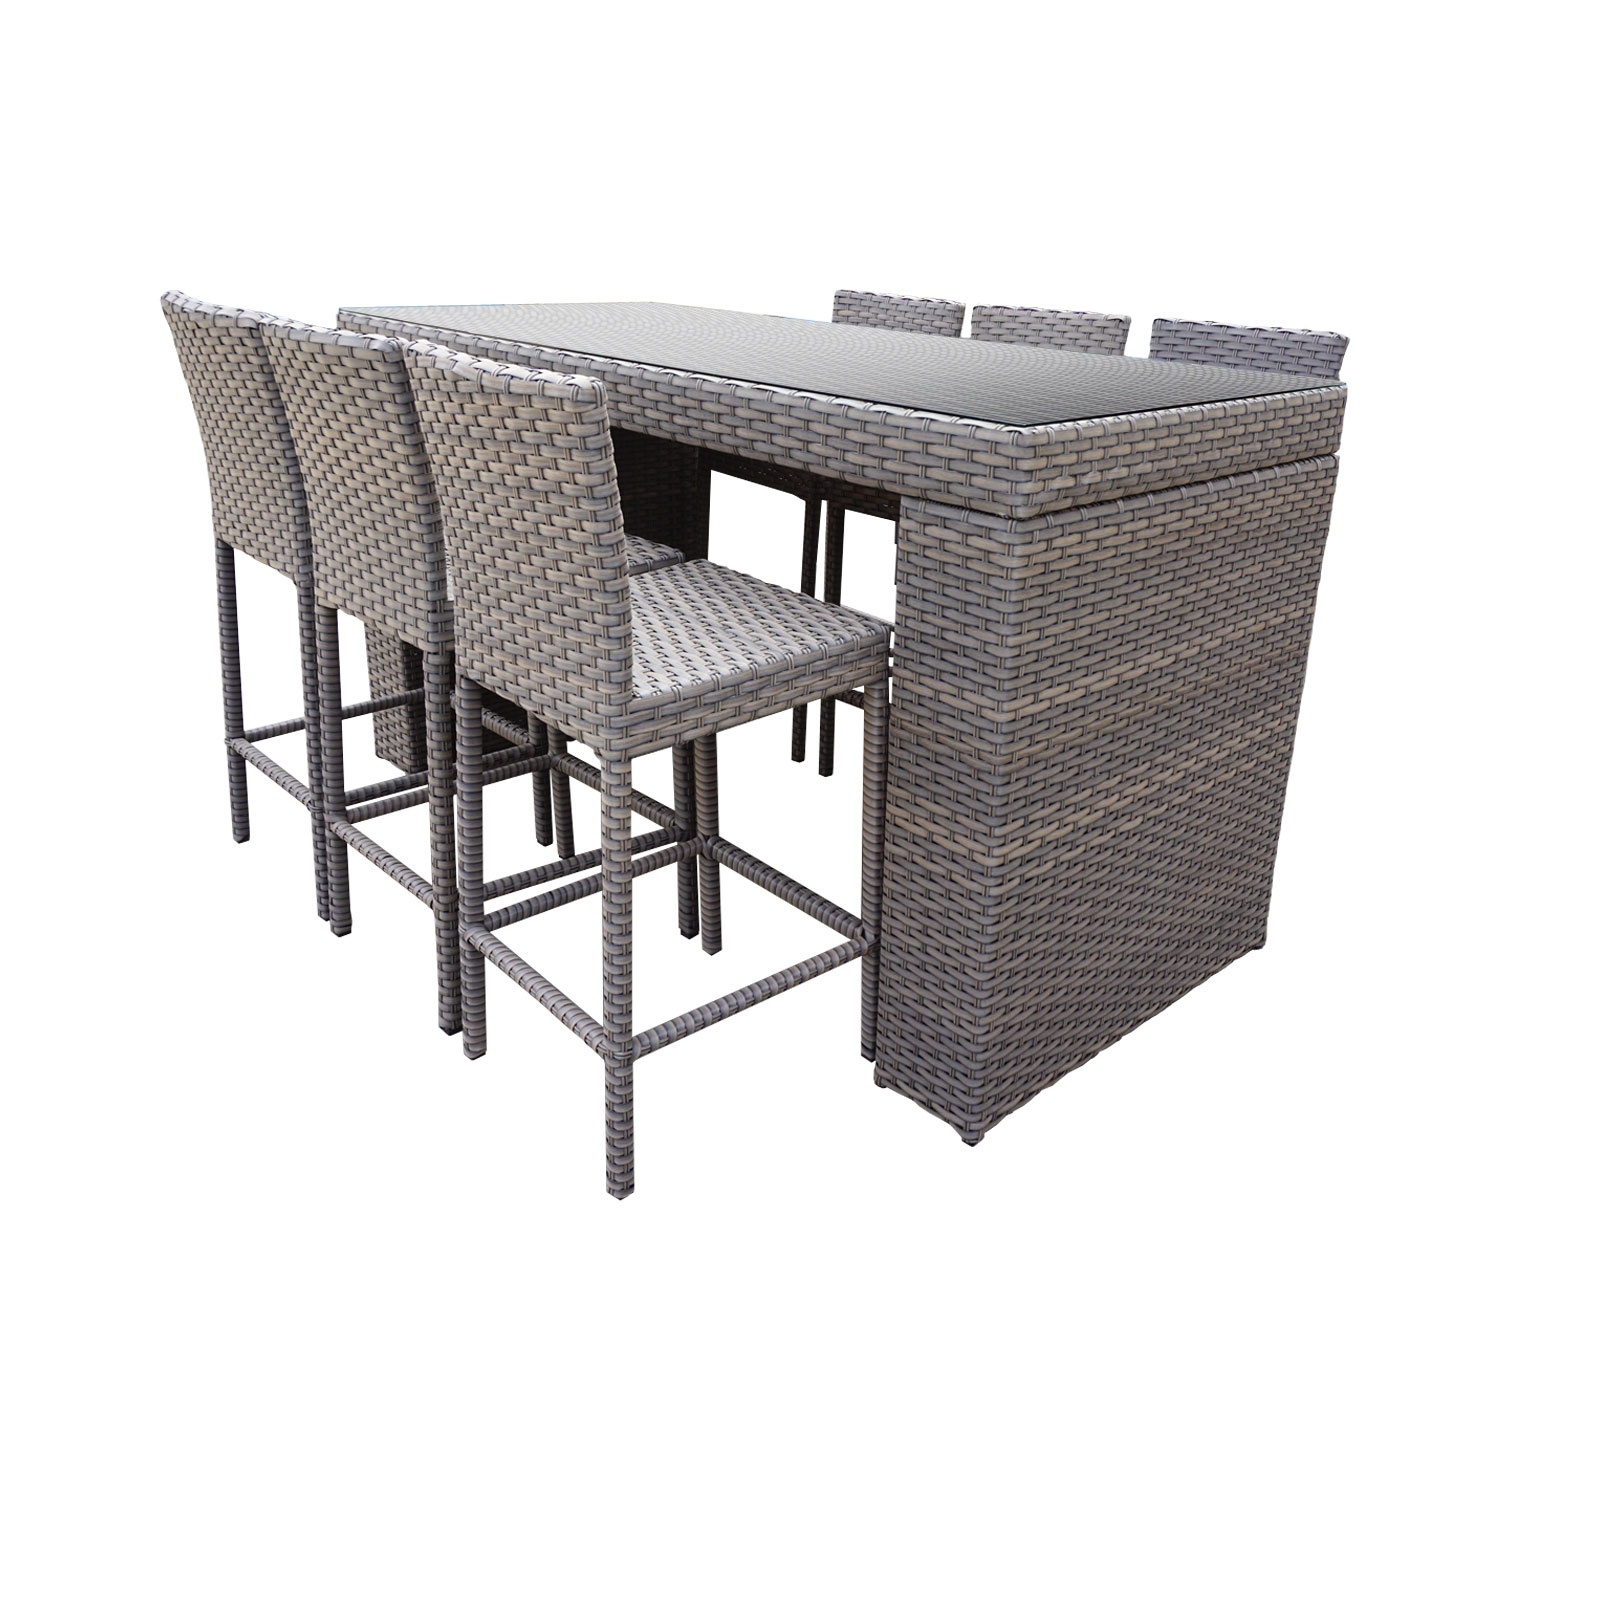 7 Piece Patio Set Bar Table Set With Barstools 7 Piece Outdoor Wicker Patio Furniture